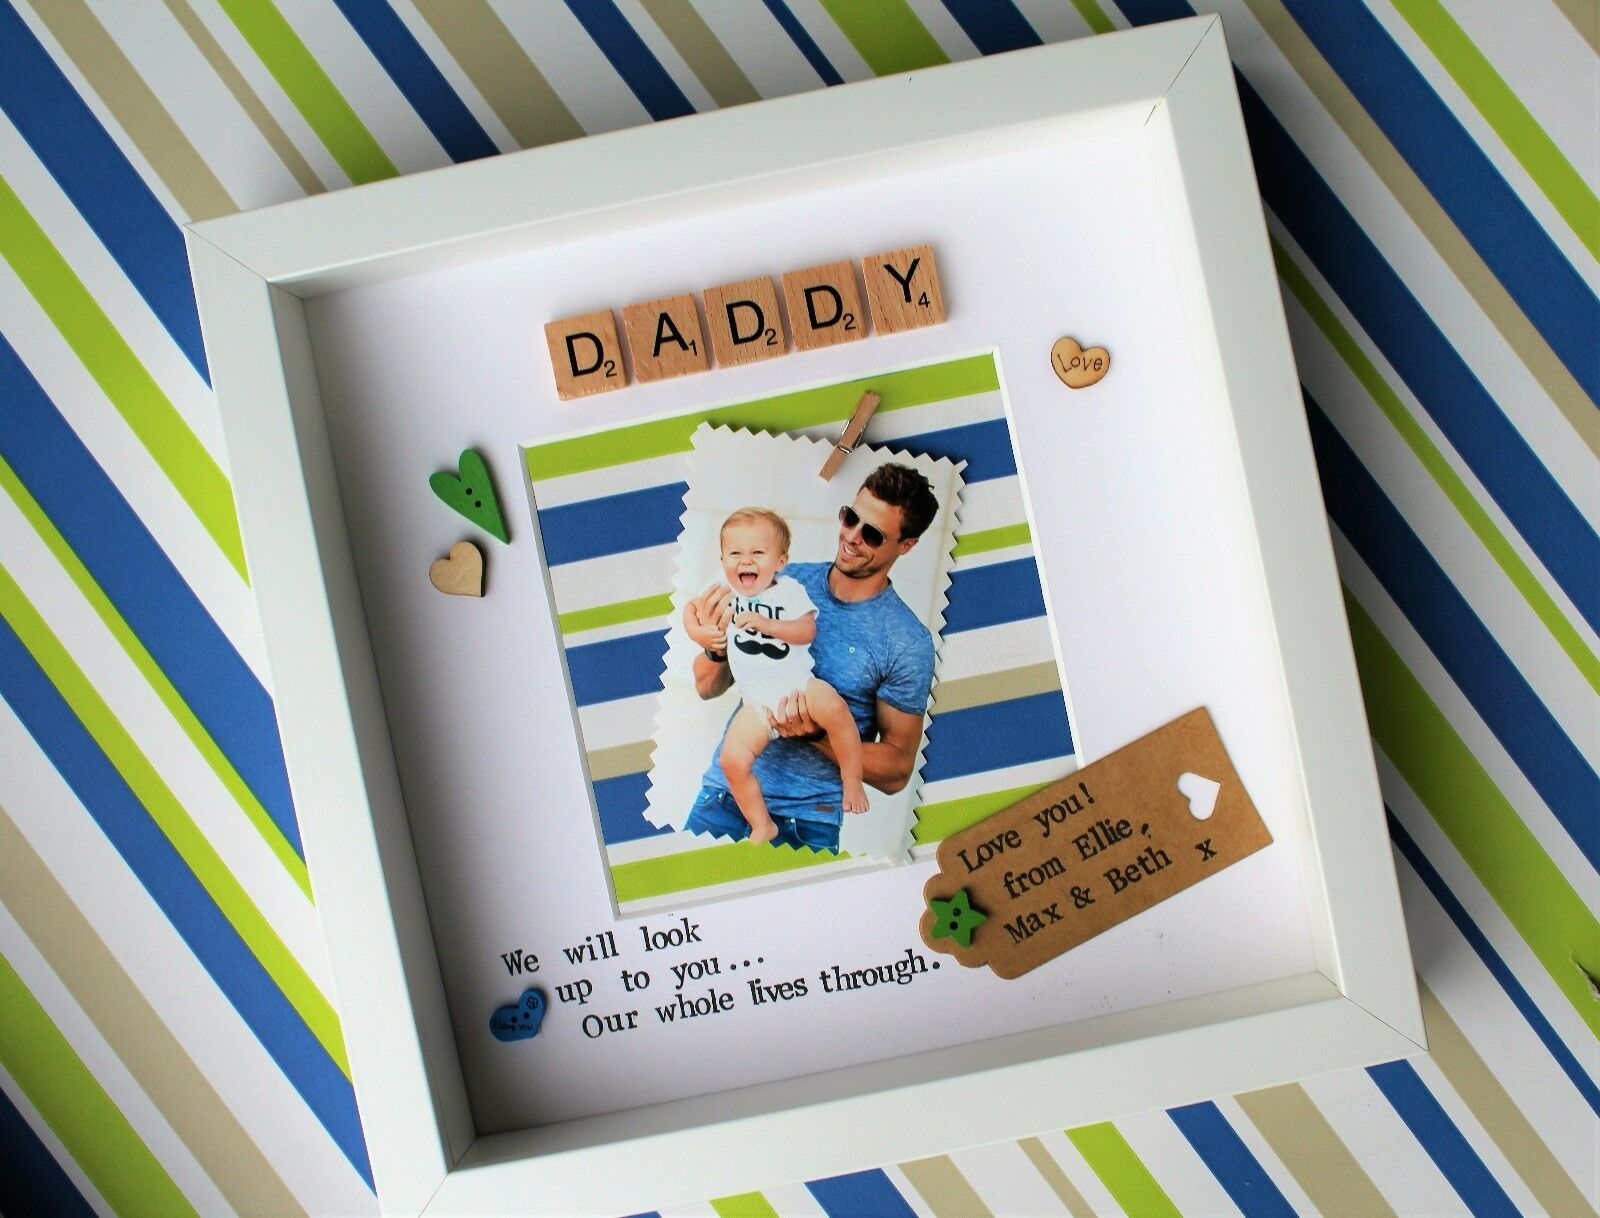 CHRISTMAS handmade personalised gift photo frame dad grandad birthday present ntrghx7680-Other Celebrations & Occasions